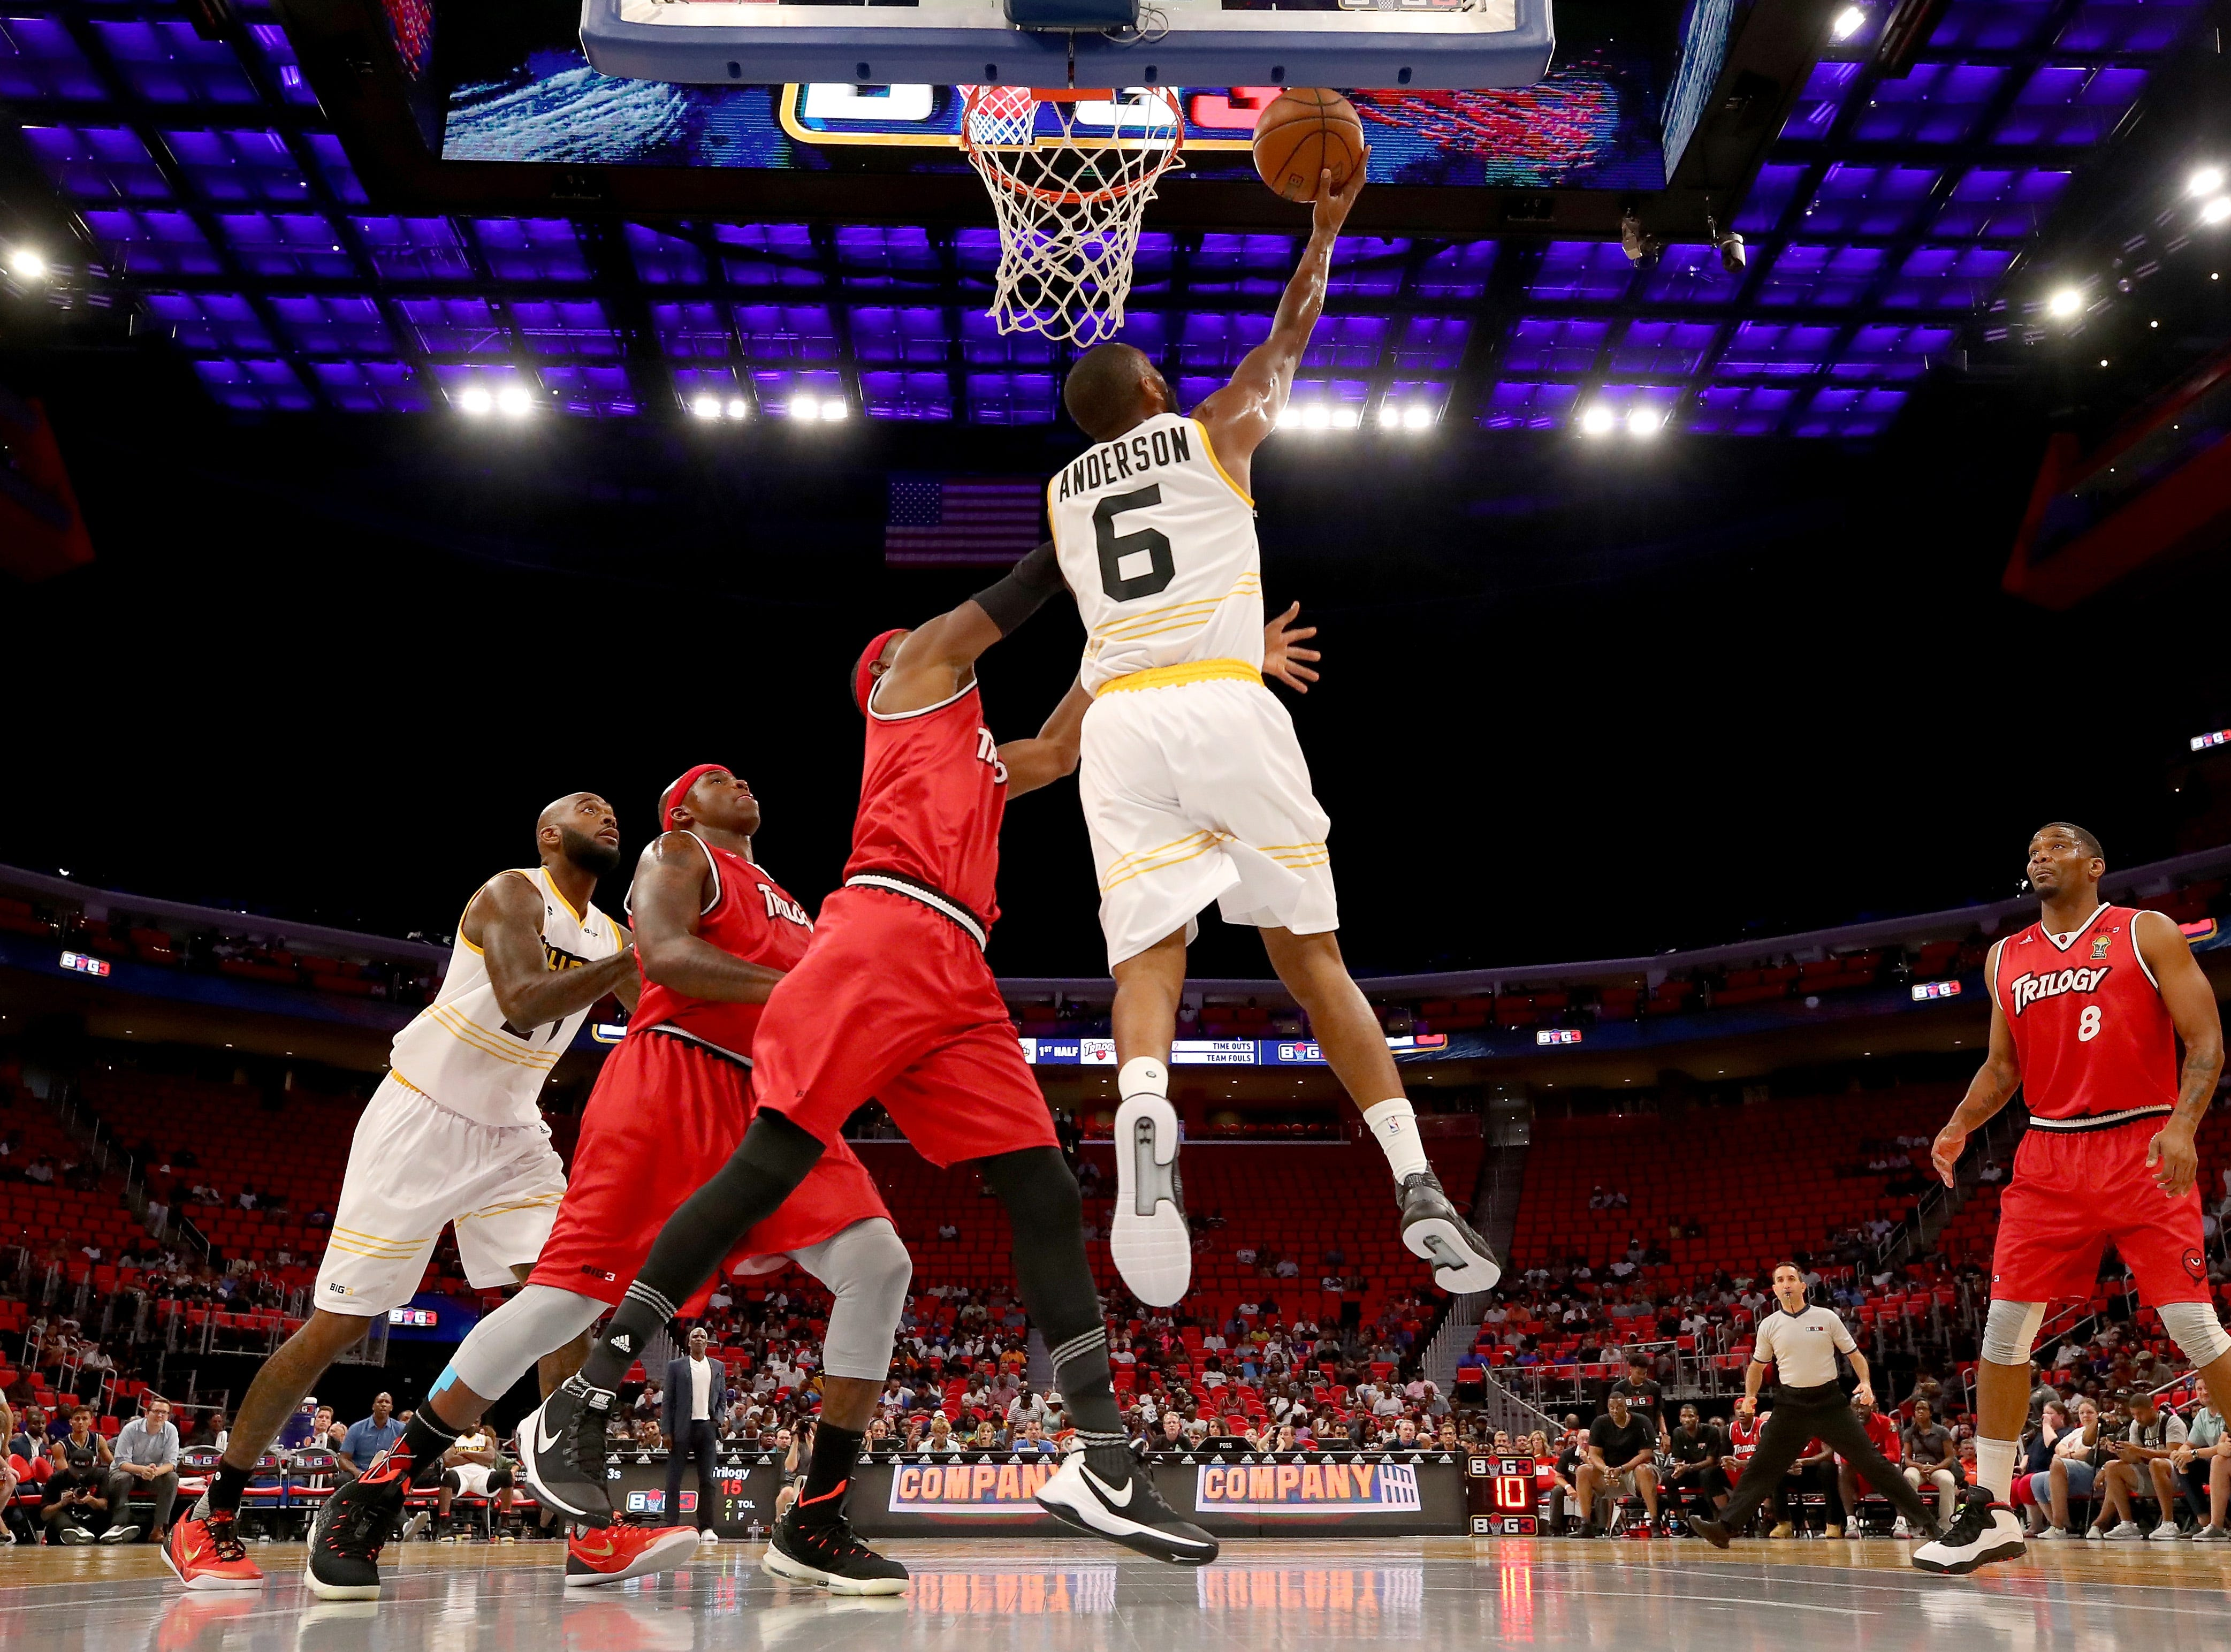 Alan Anderson of the Killer 3s attempts a shot past Derrick Byars, left, of Trilogy during BIG3 - Week Four at Little Caesars Arena on July 13, 2018 in Detroit.